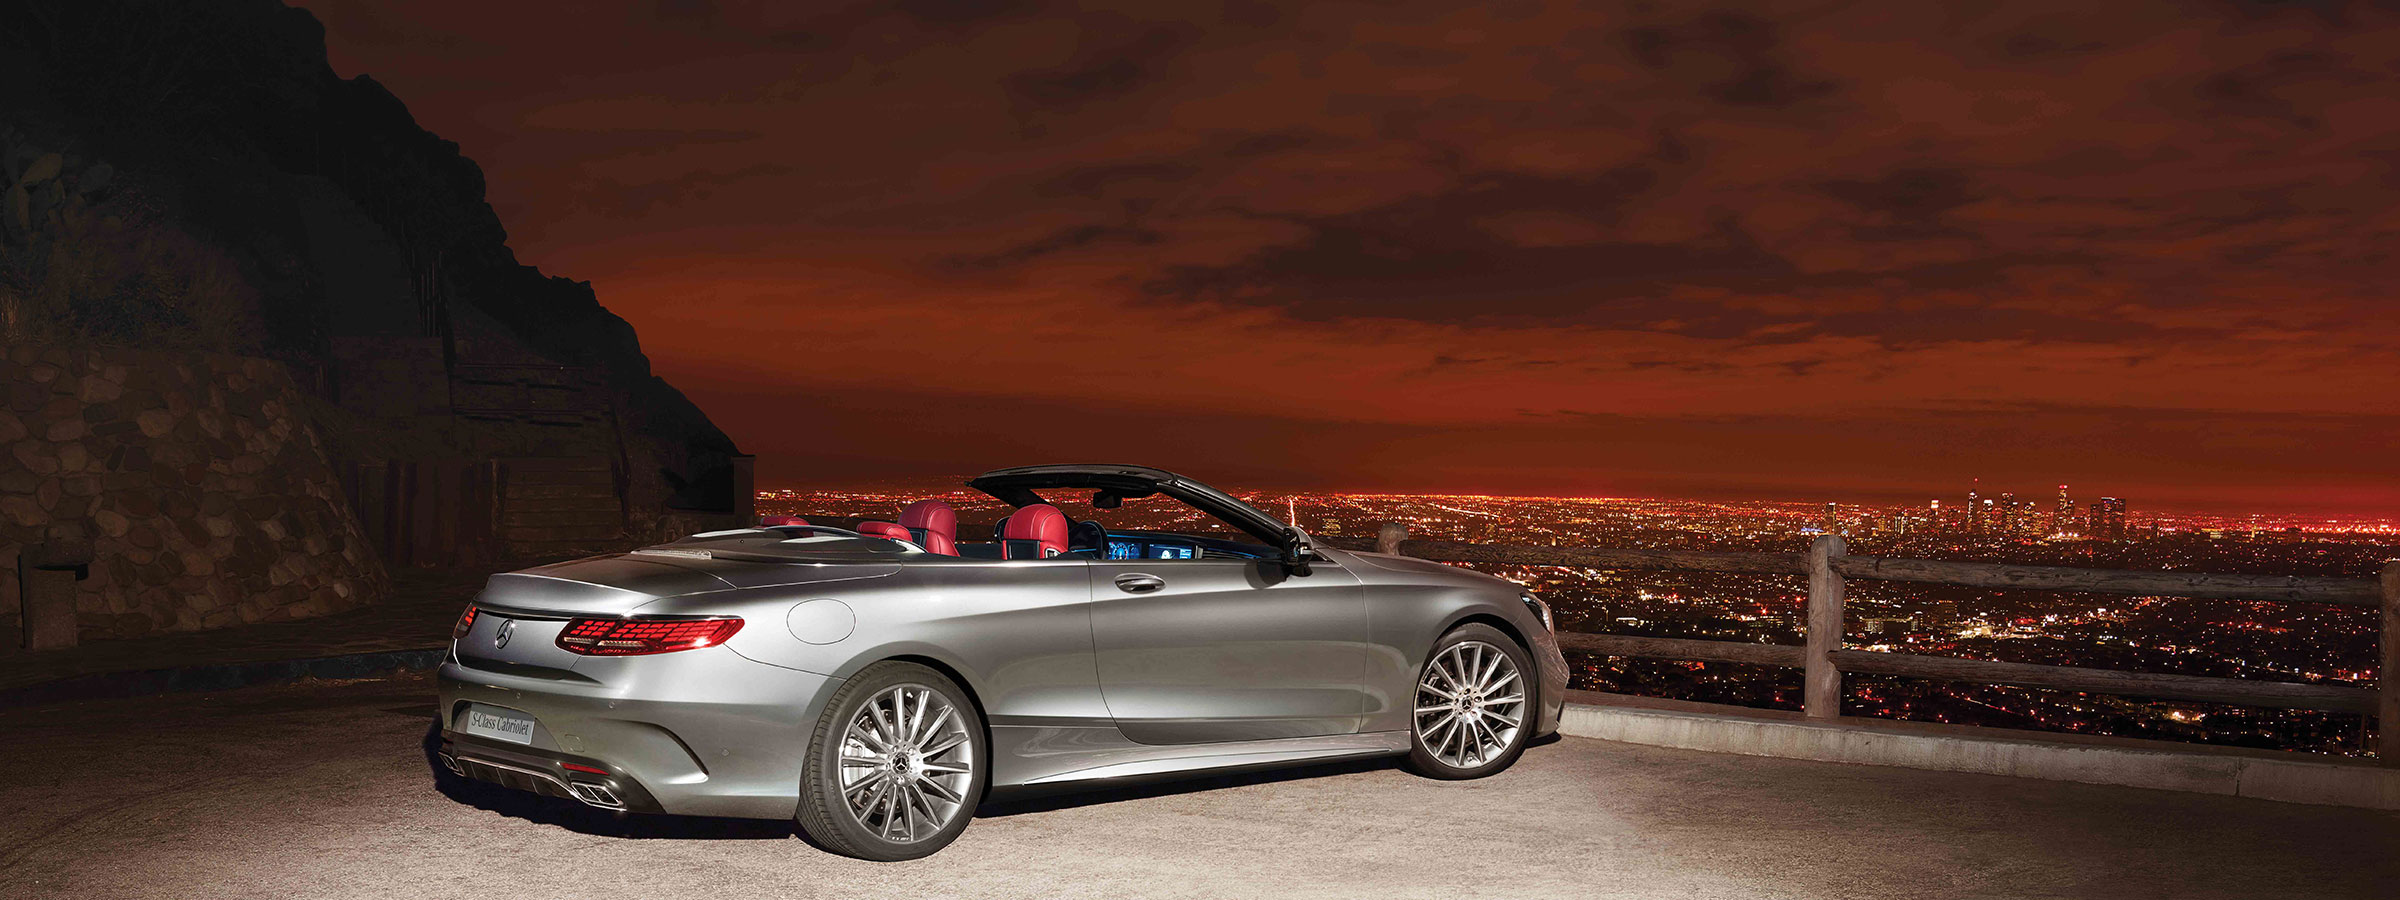 2018 S-Class Cabriolet Campaign Hero Carousel Image